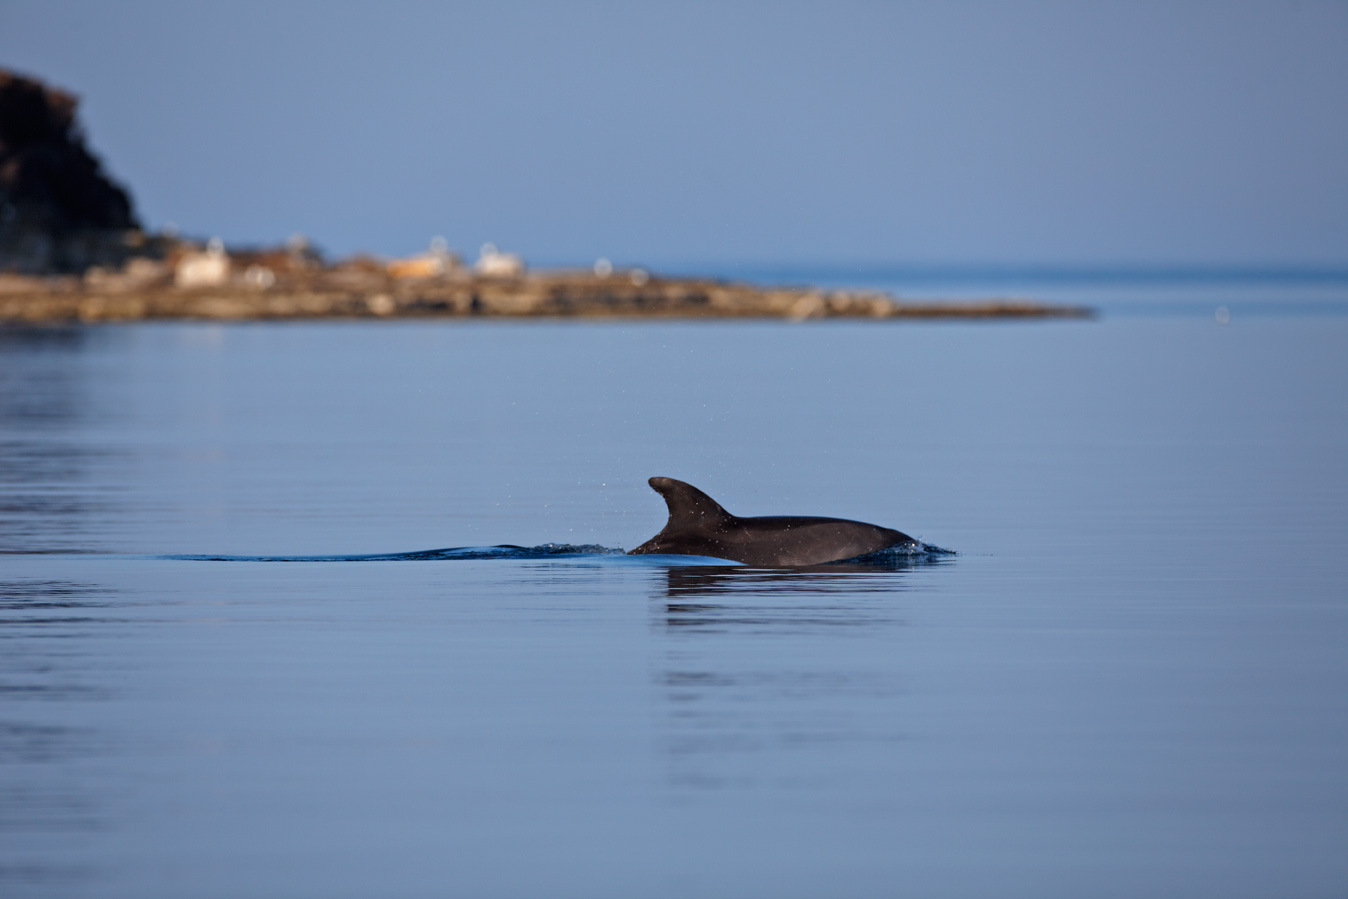 croatia, sea, brijuni, istra, croatia, national park, coast, adriatic, dolphin